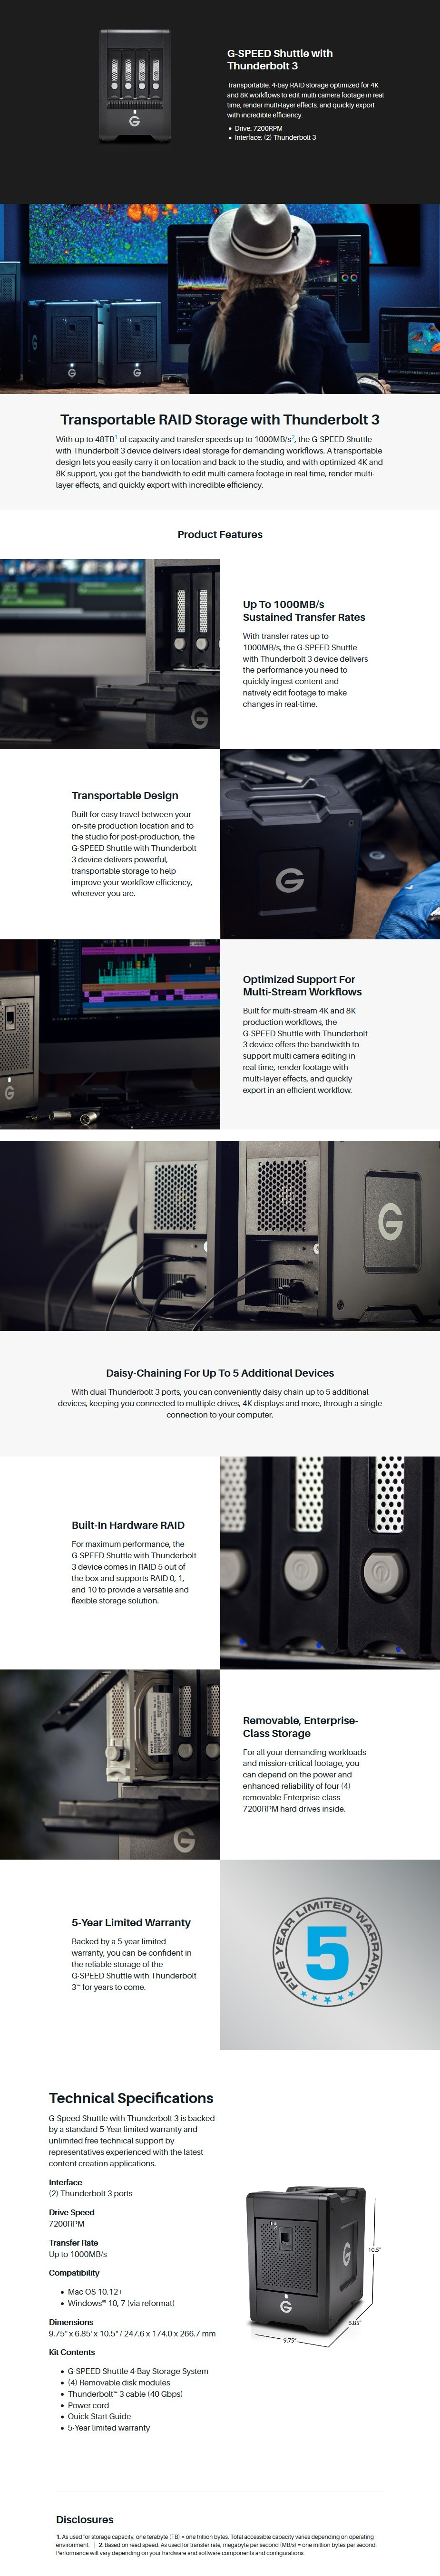 G-Technology 0G10089 G-SPEED Shuttle Thunderbolt 3 48GB 4-Bay HDD Storage System Display Overview 1